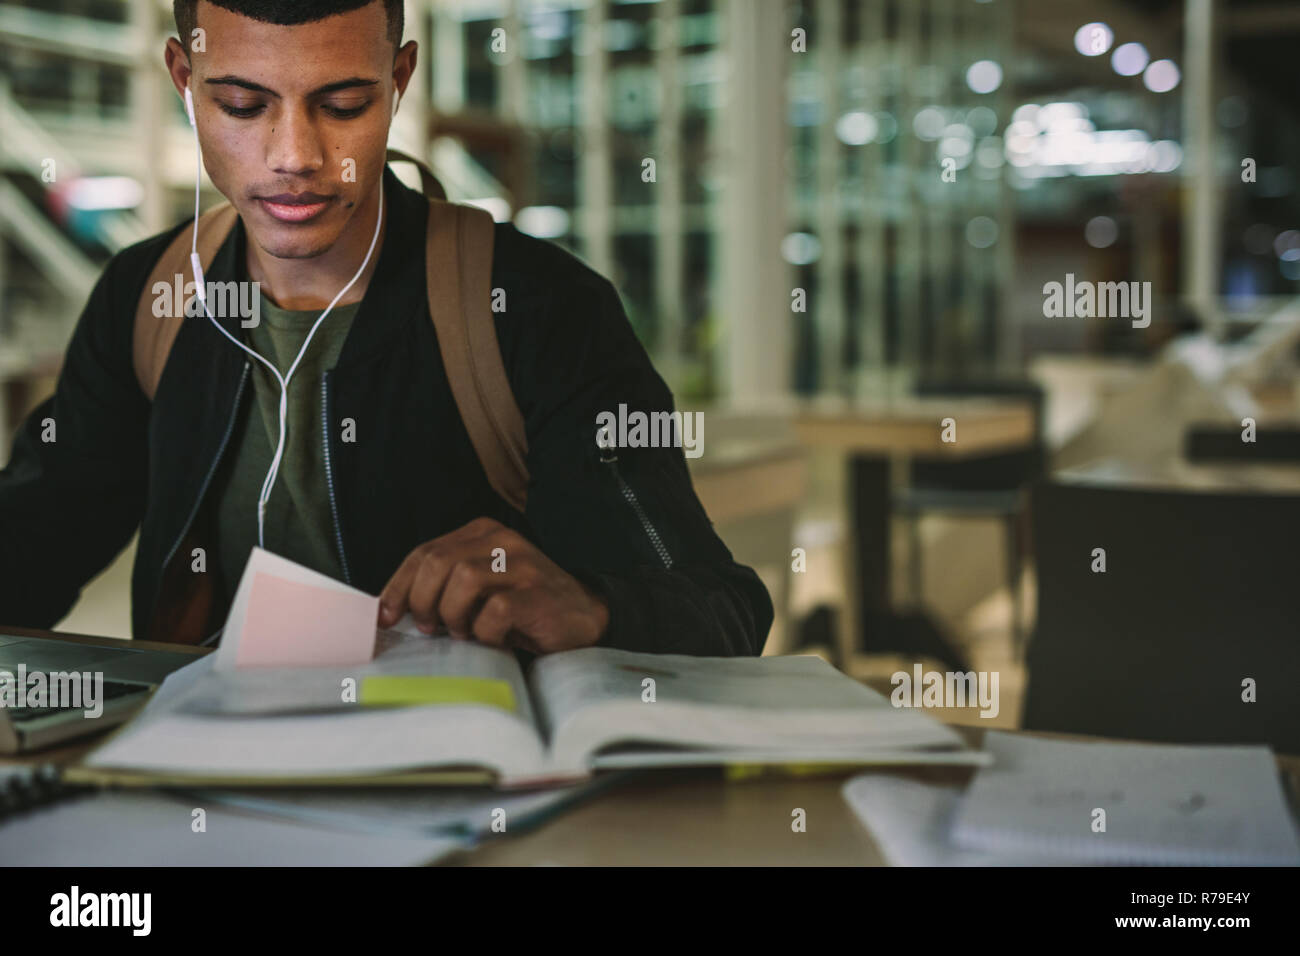 Male student sitting at table reading books and preparing for exams. Young man reading book at university library. - Stock Image